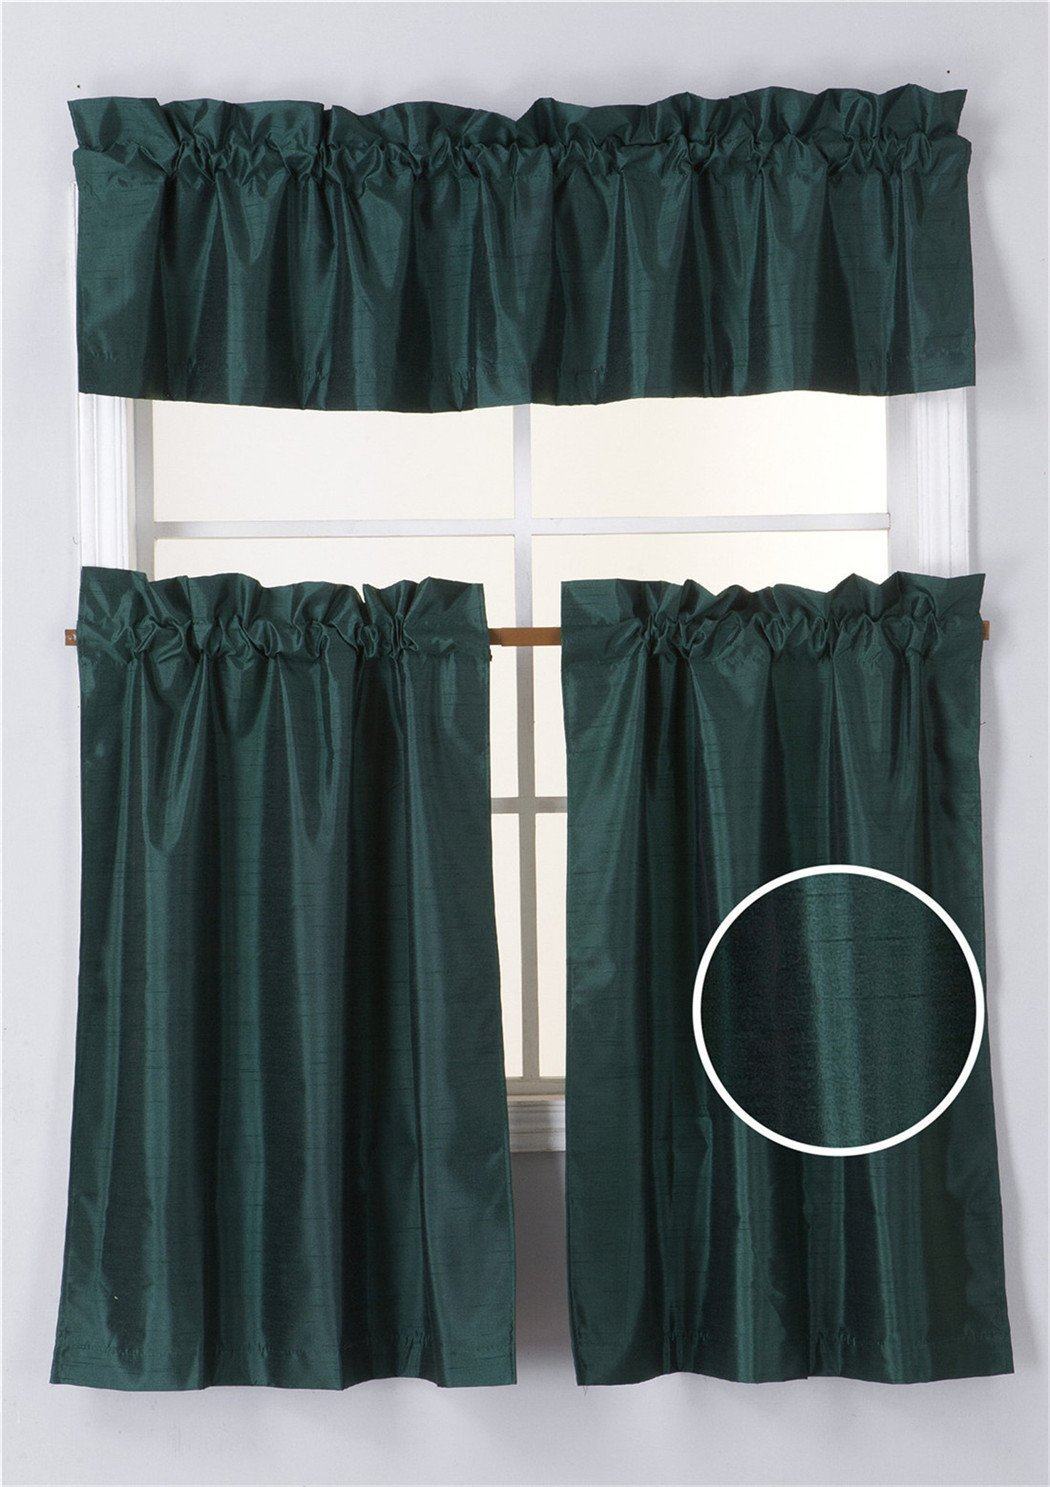 Fancy Collection 3 Pieces Faux Silk Blackout Kitchen Curtain Set Tier Curtains and Valance Set Solid Brick Window Set Thermal Backing Drapes New Fancy Linen